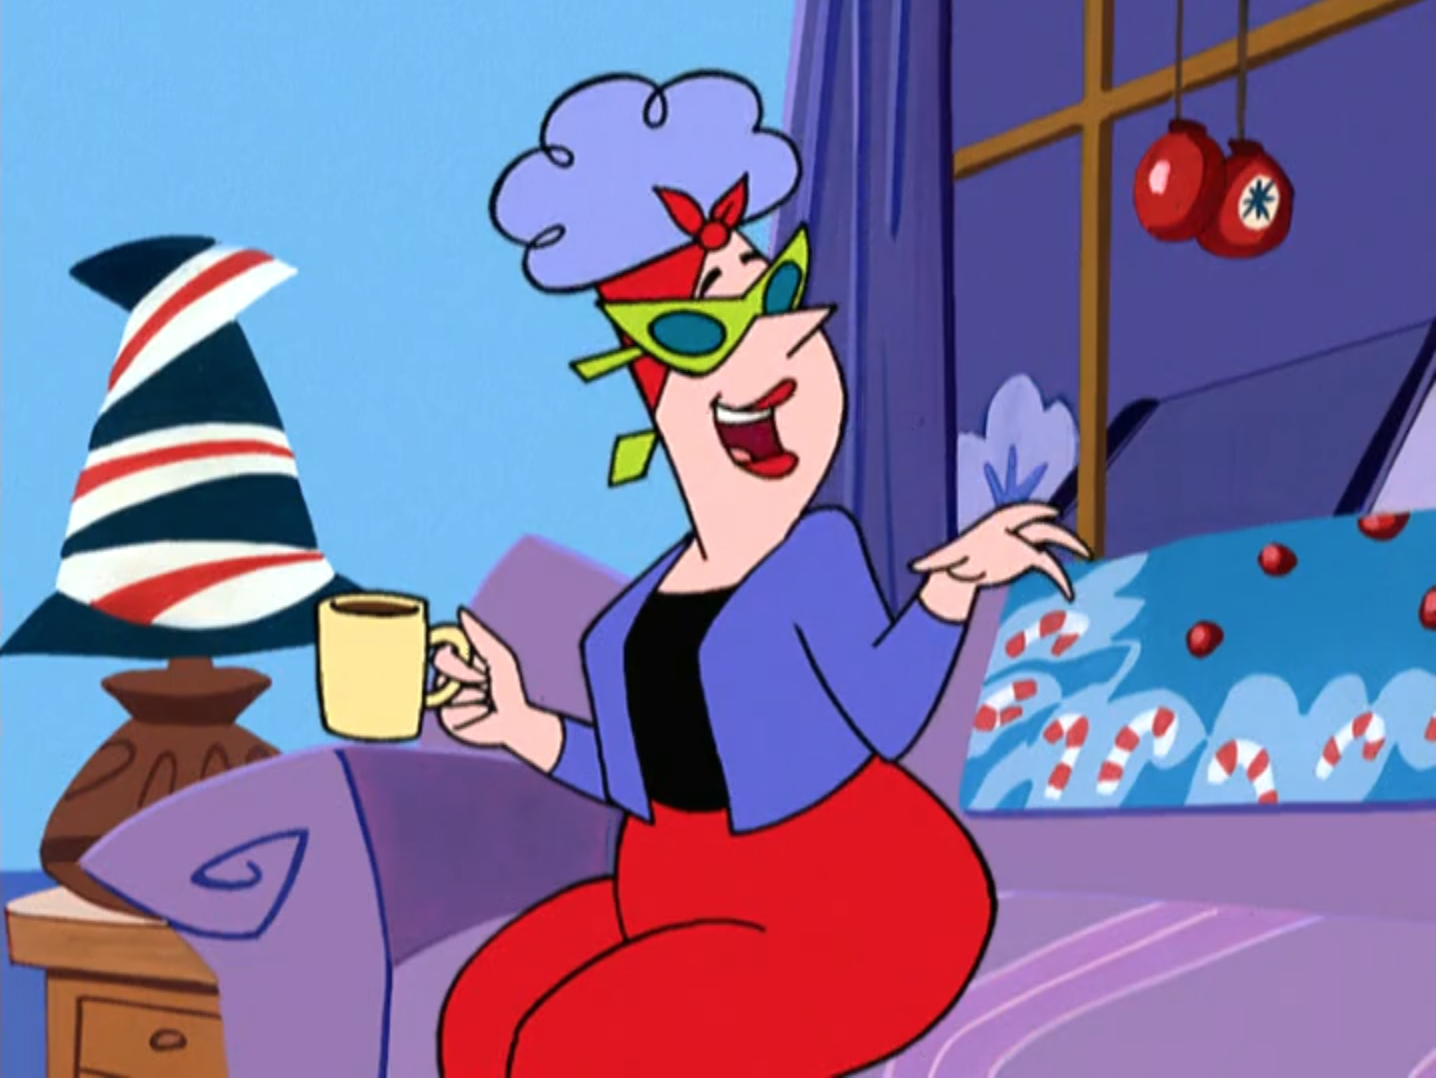 Bunny Bravo | Christmas Specials Wiki | FANDOM powered by Wikia